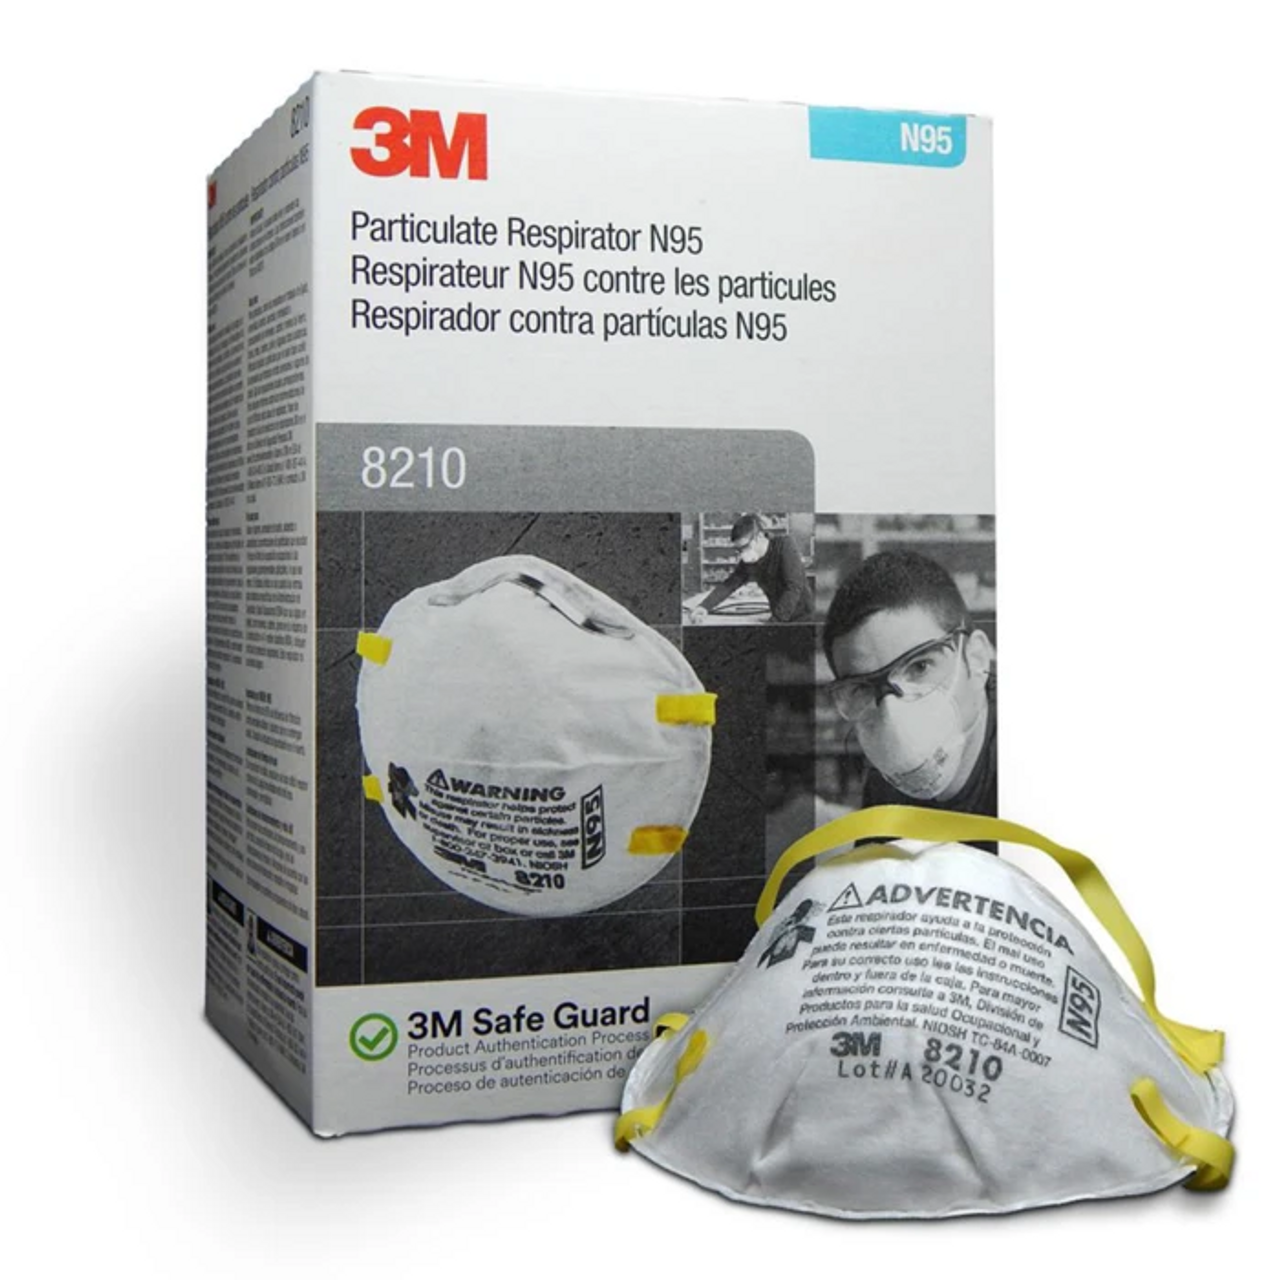 3M Particulate Respirator 8210, N95 Mask